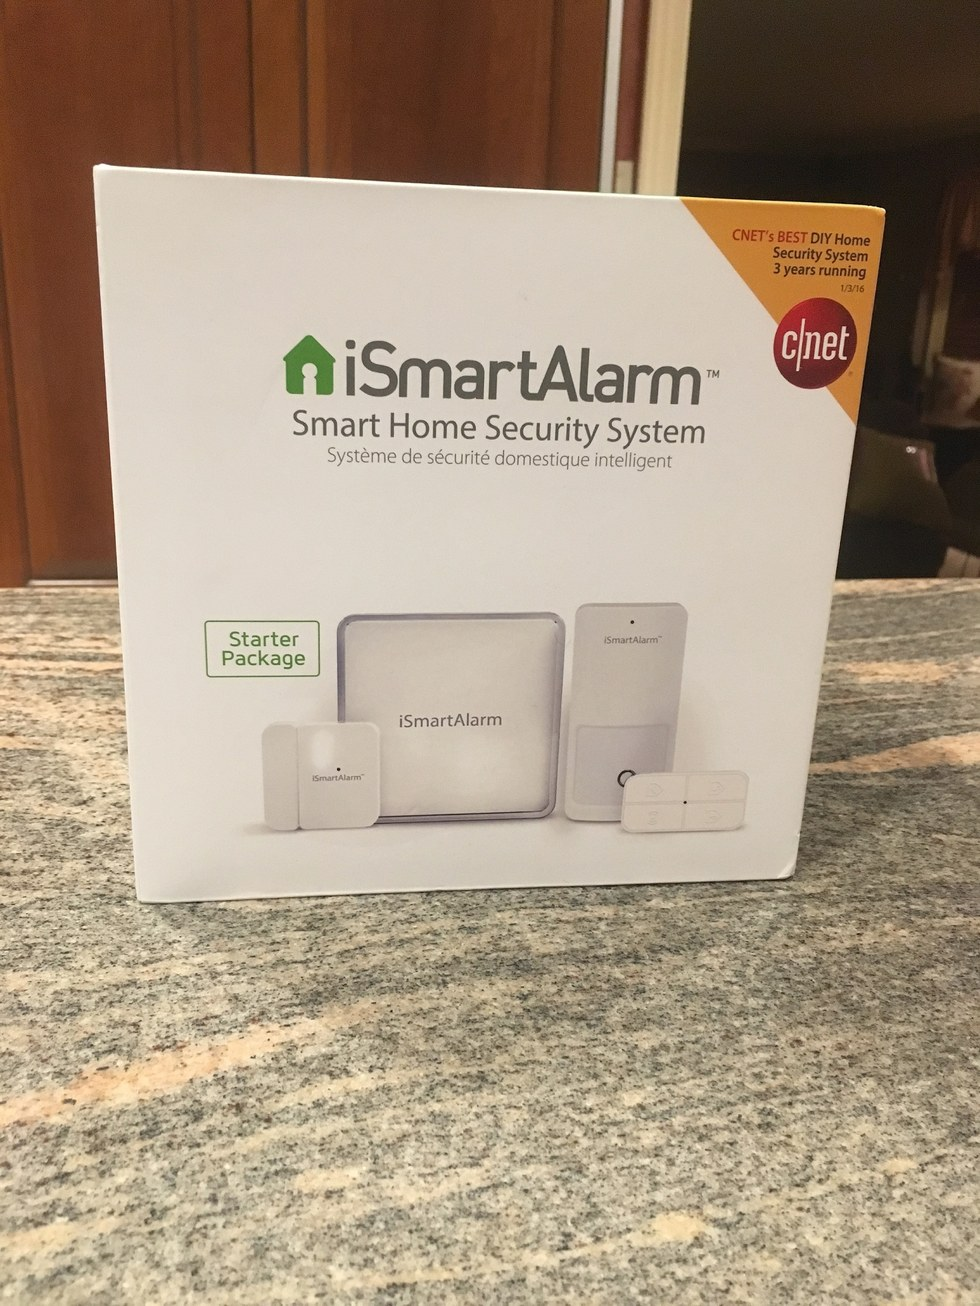 gearbrain tested the starter package as well as the spot wifi hd smart security camera starter package includes an